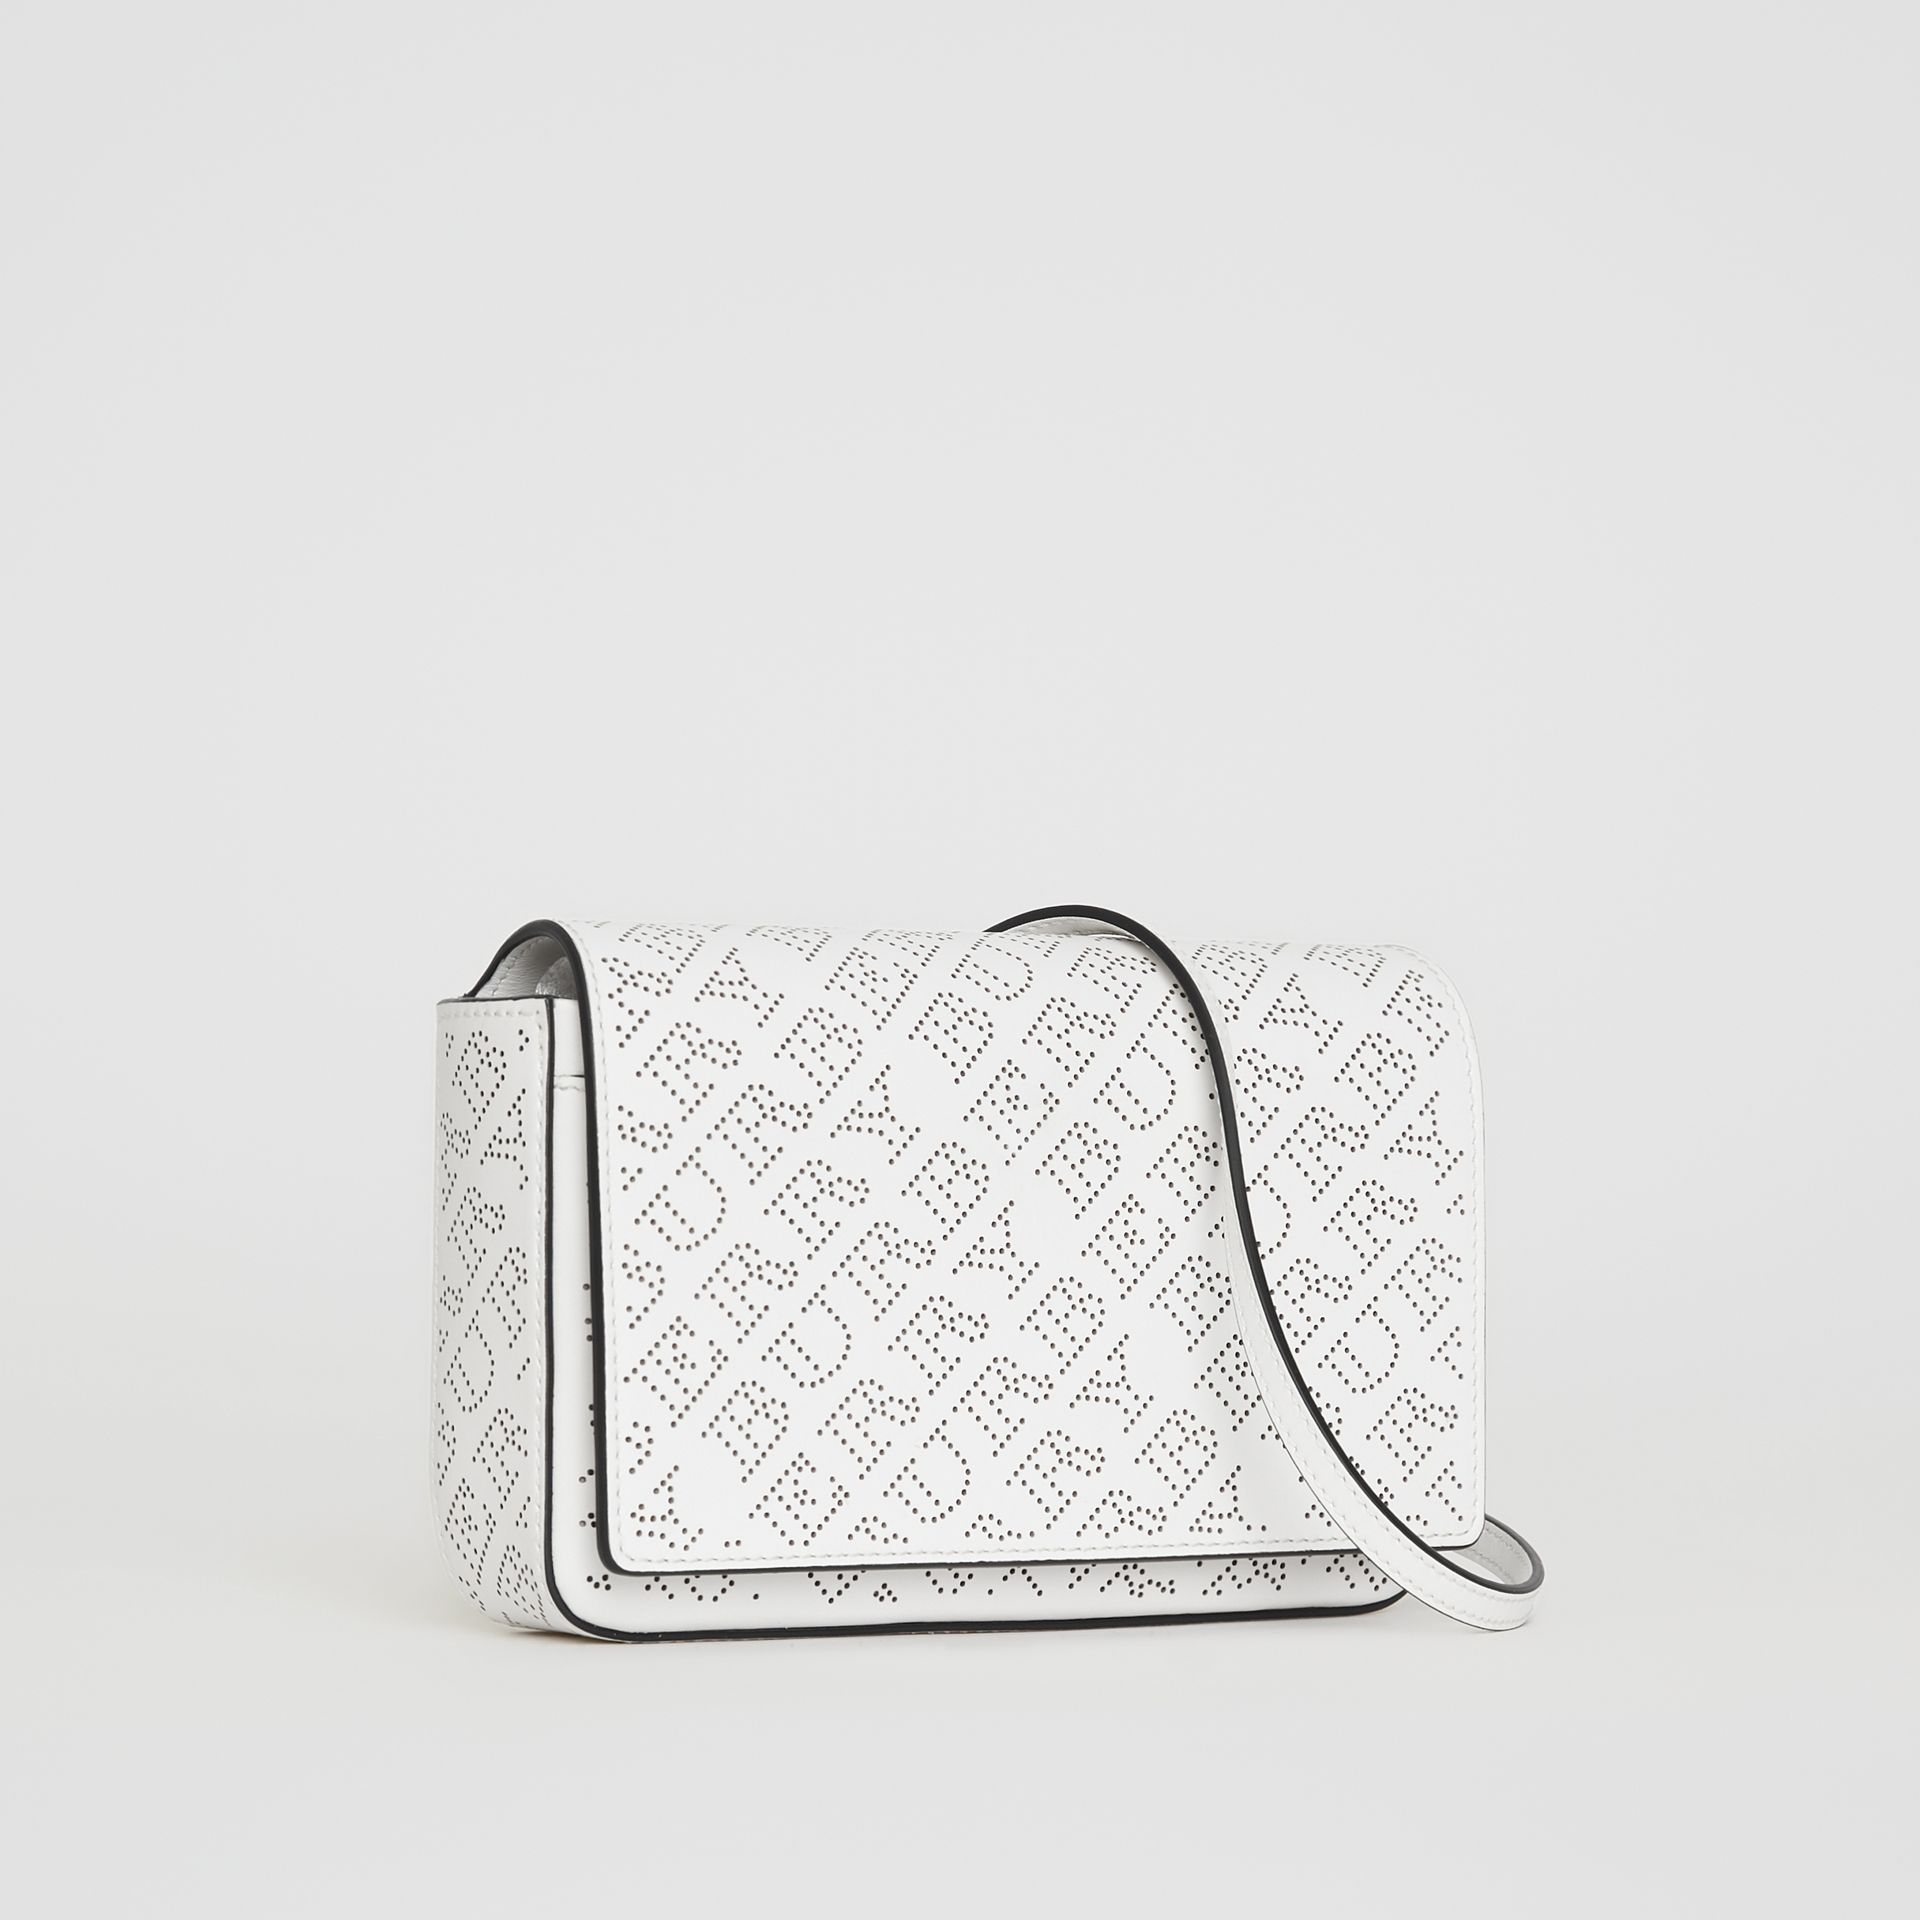 Perforated Logo Leather Wallet with Detachable Strap in White - Women | Burberry - gallery image 6